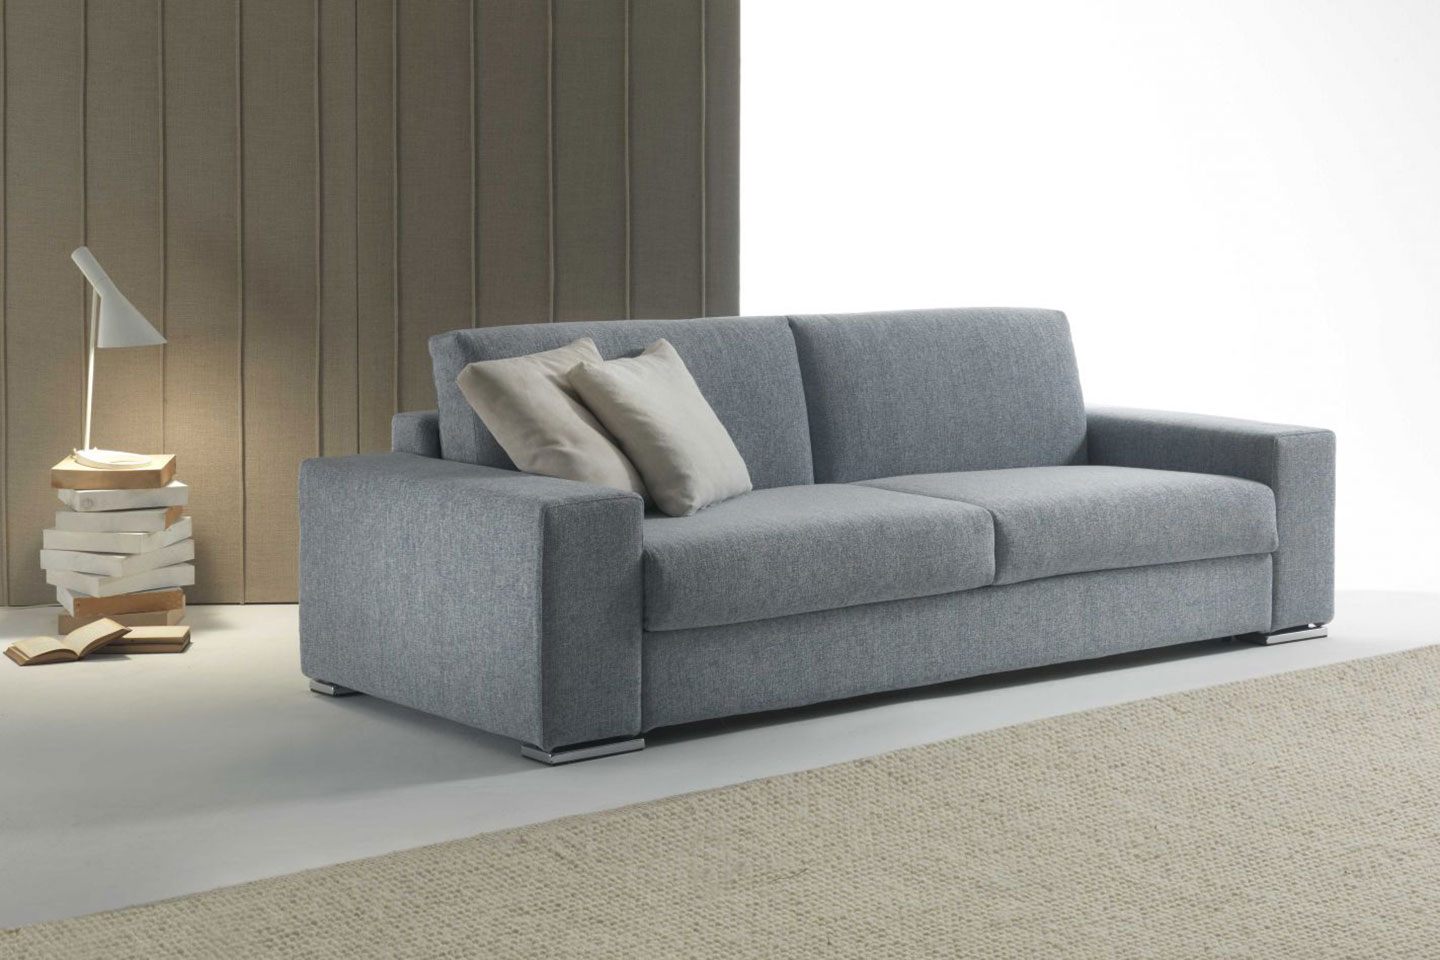 milano-sofa-bed-1